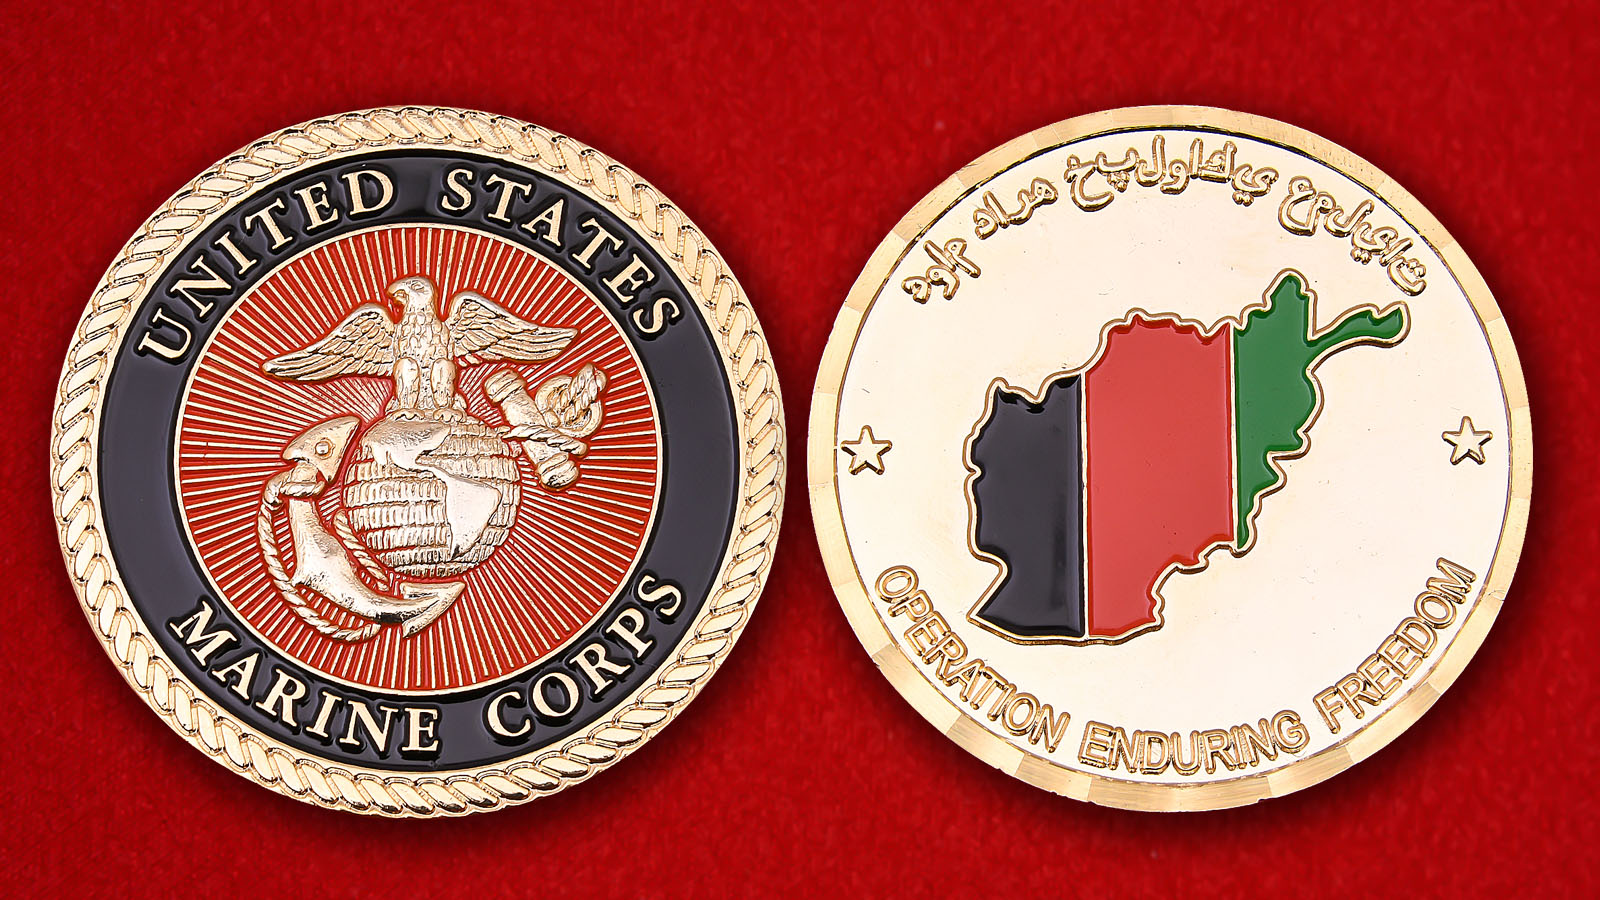 USMC Operation Enduring Freedom Challenge Coin